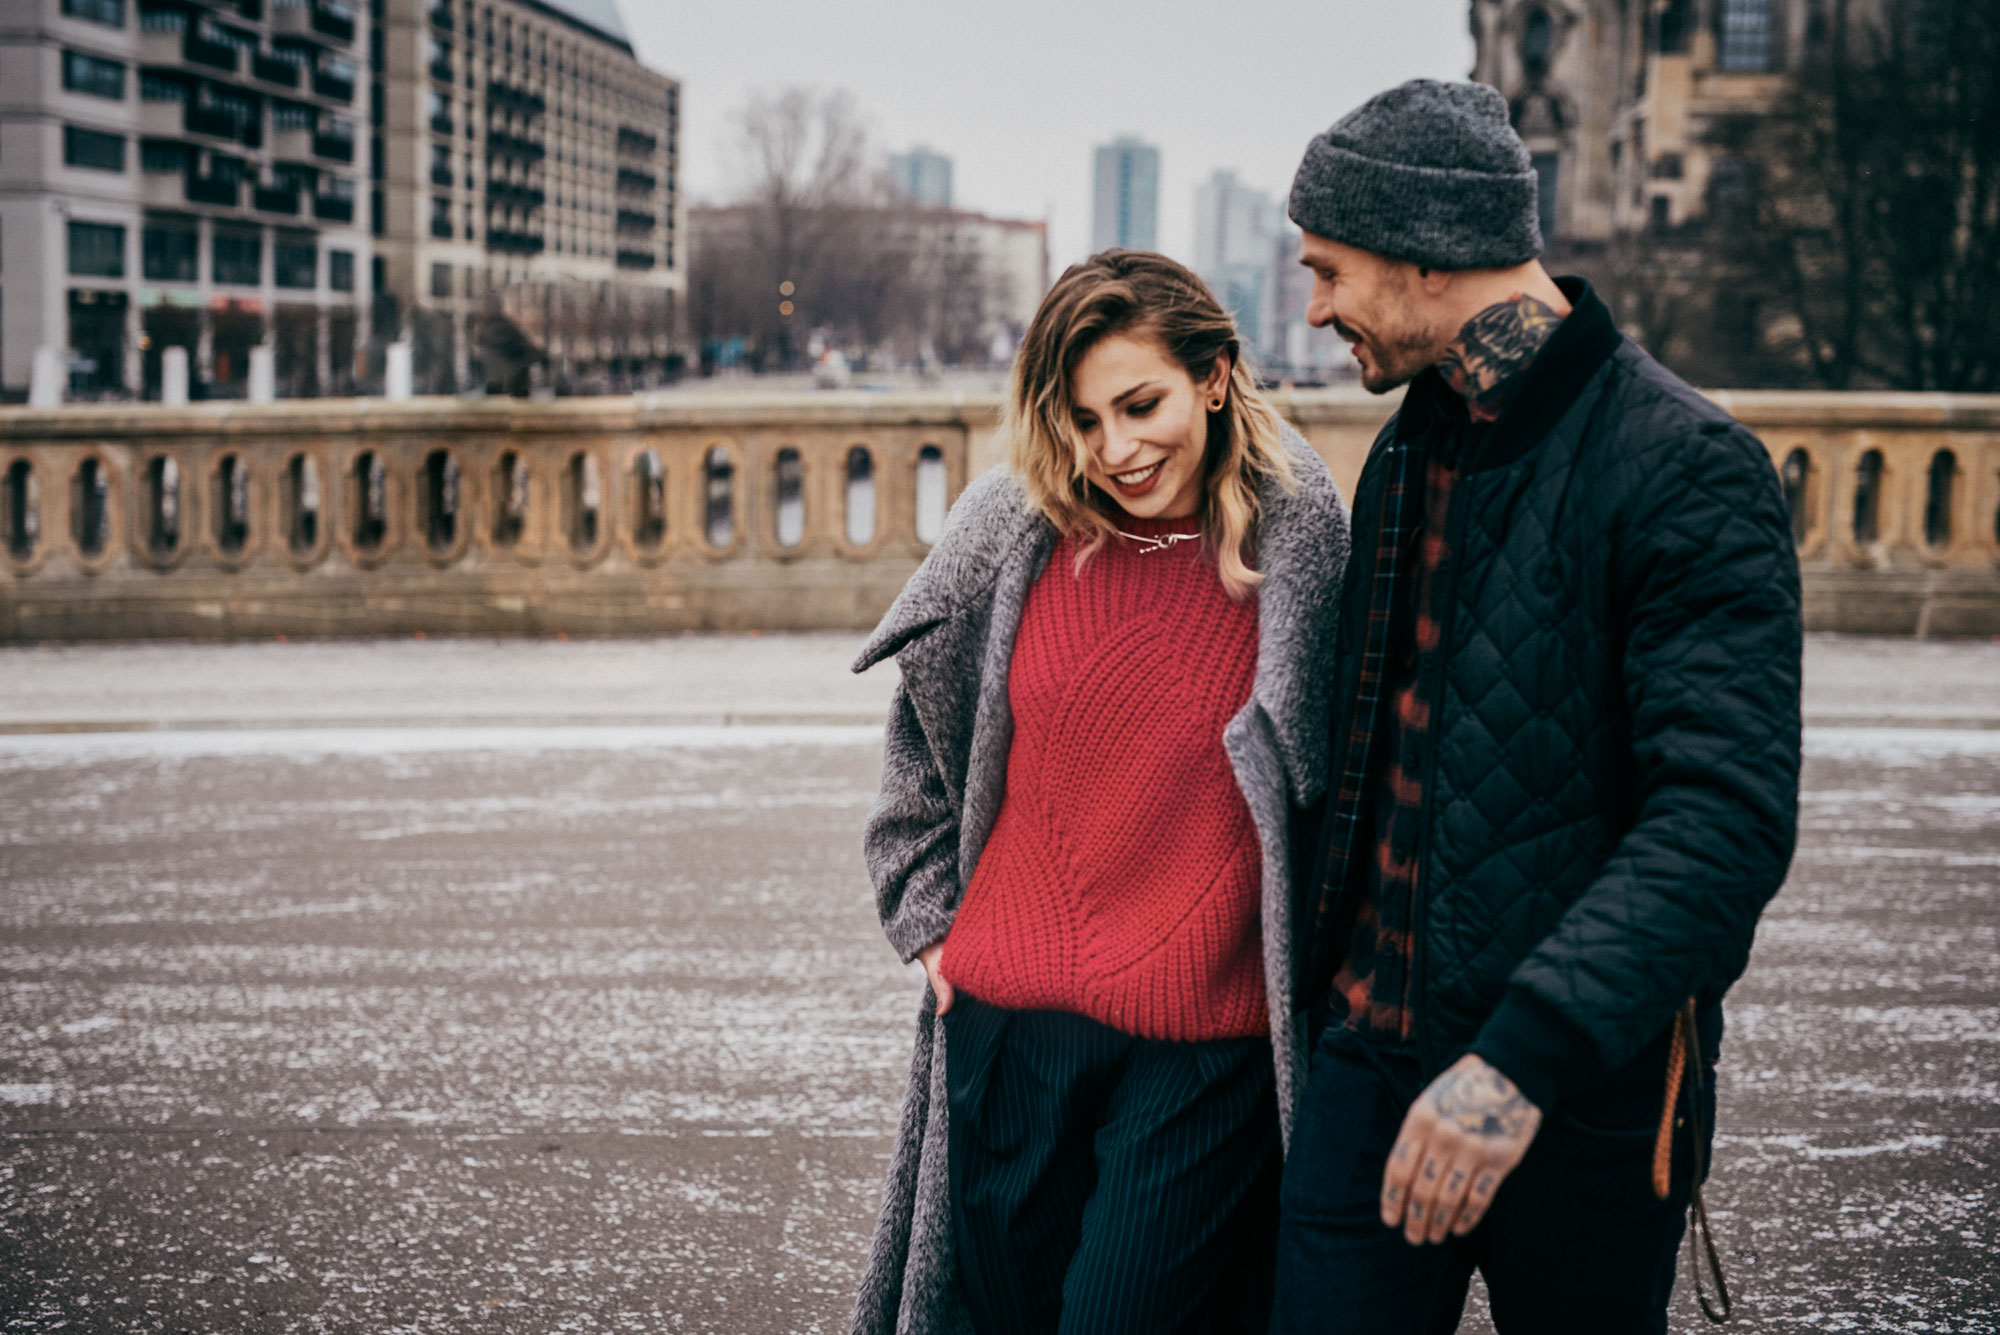 romantic Valentines day | couple goals in Berlin | Masha Sedgwick & Swen Losinsky (boyfriend)